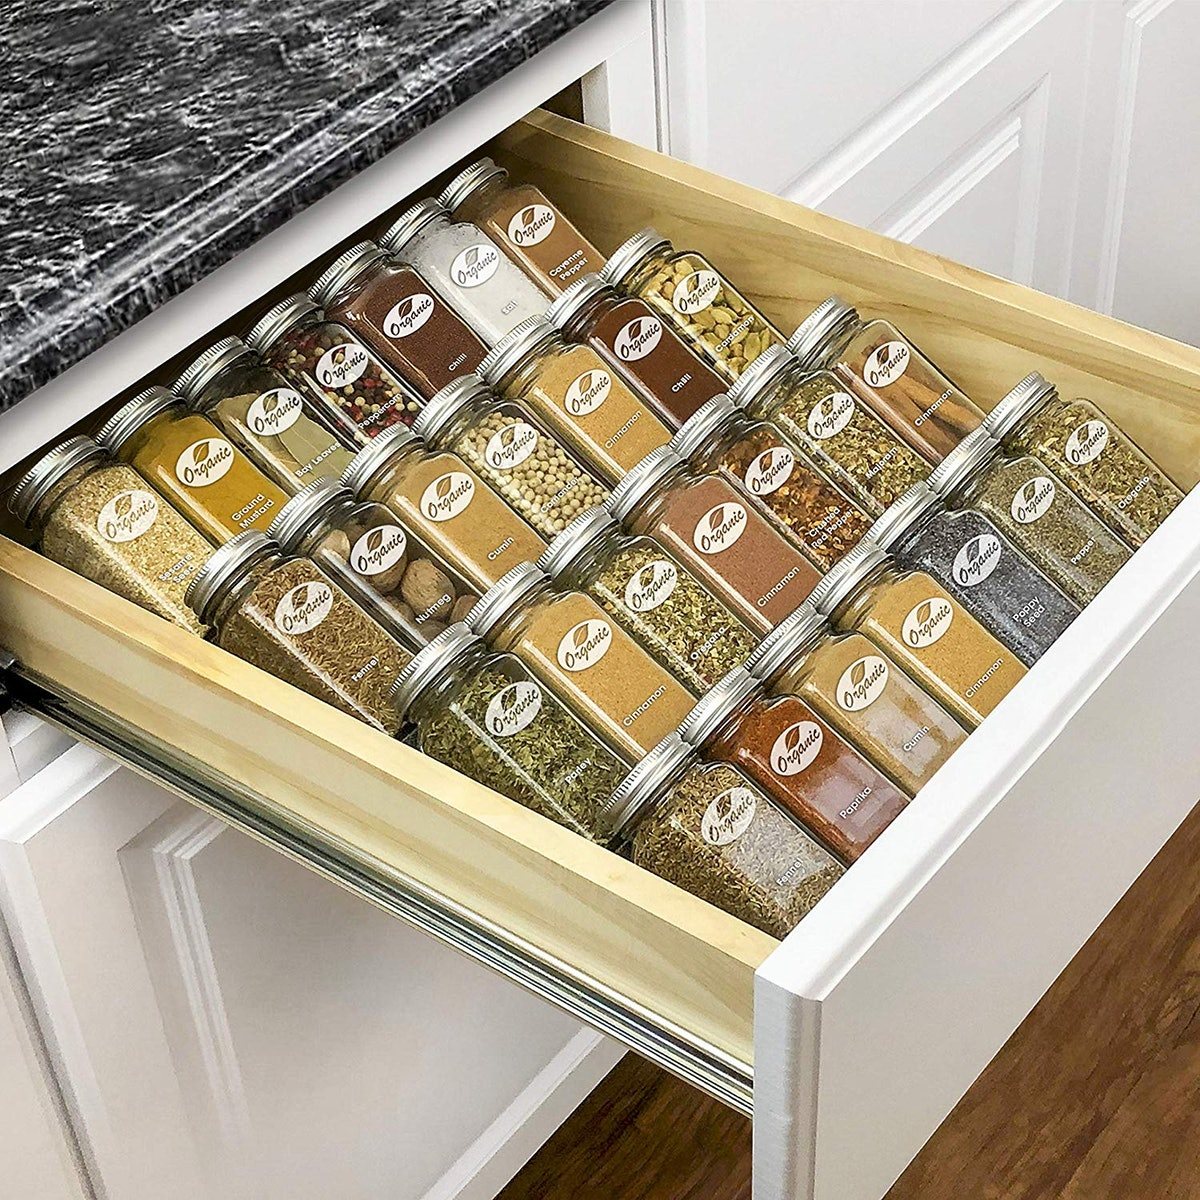 Lynk Professional Spice Rack Tray